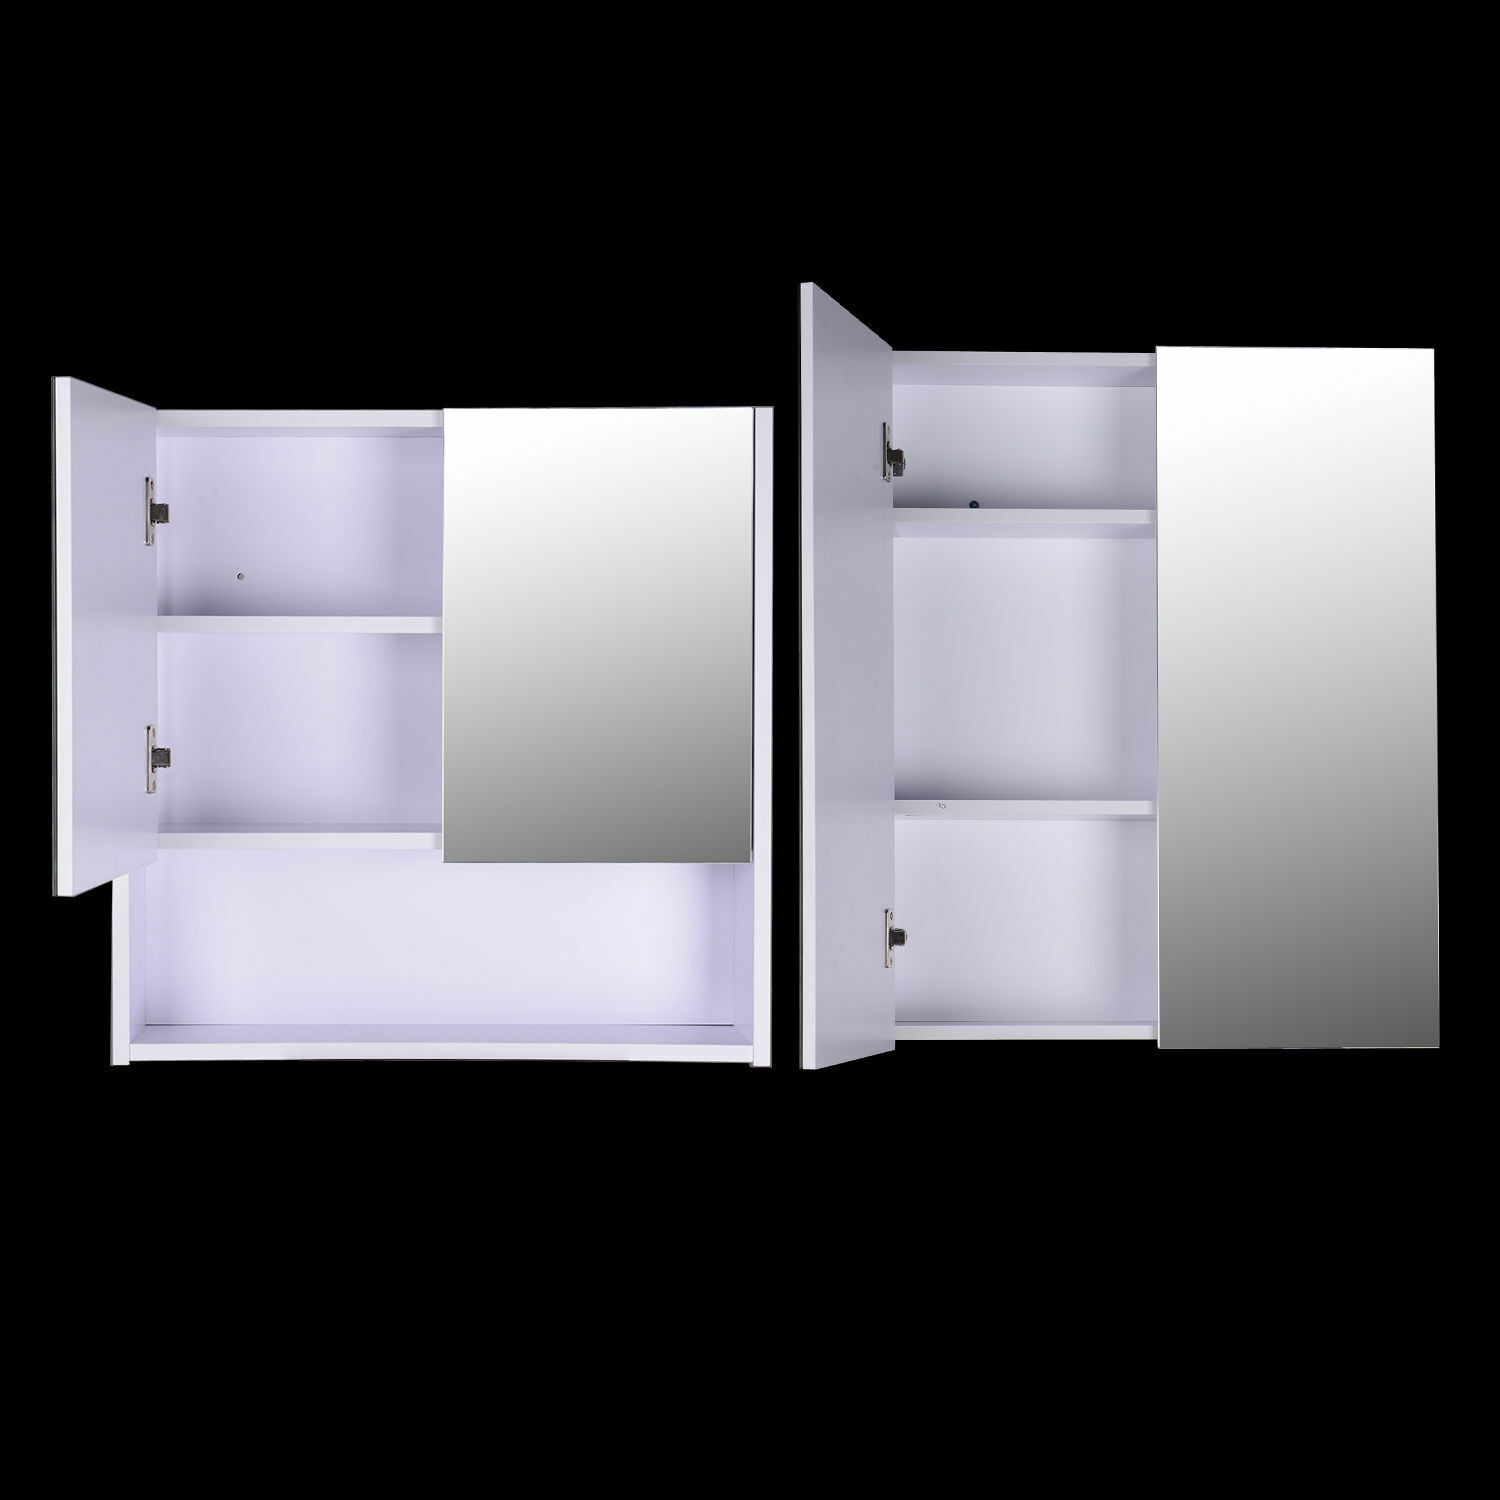 Wall Mounted Mirror Cabinet Vanity Storage Cupboard Shelf Bathroom Double Door